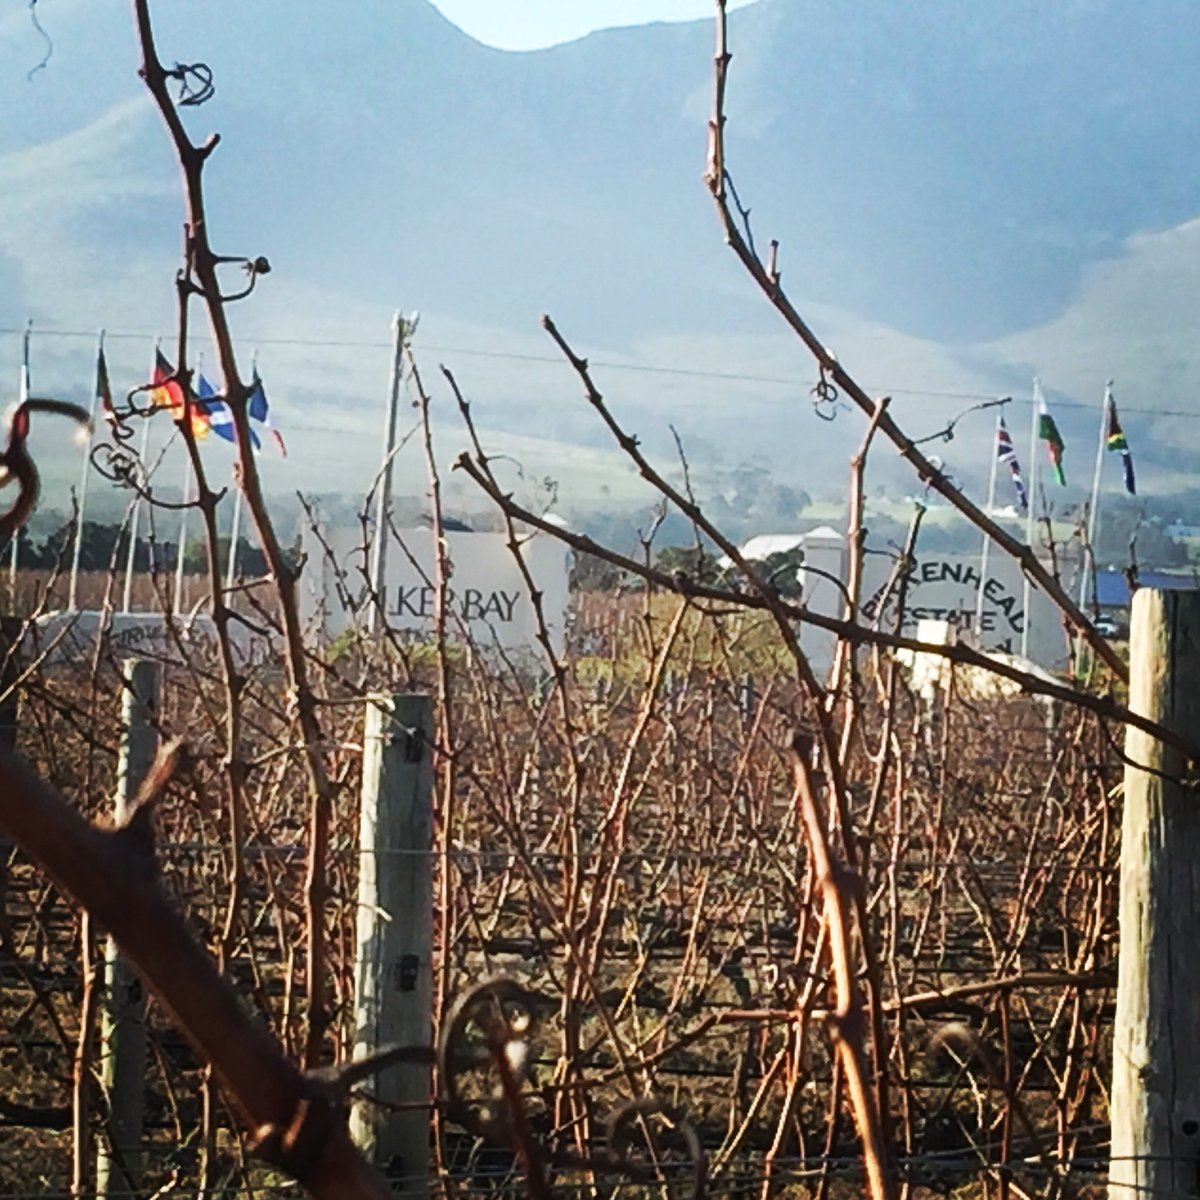 Vines waiting to be pruned....soon #walkerbay <br>http://pic.twitter.com/8tFRmfomB6